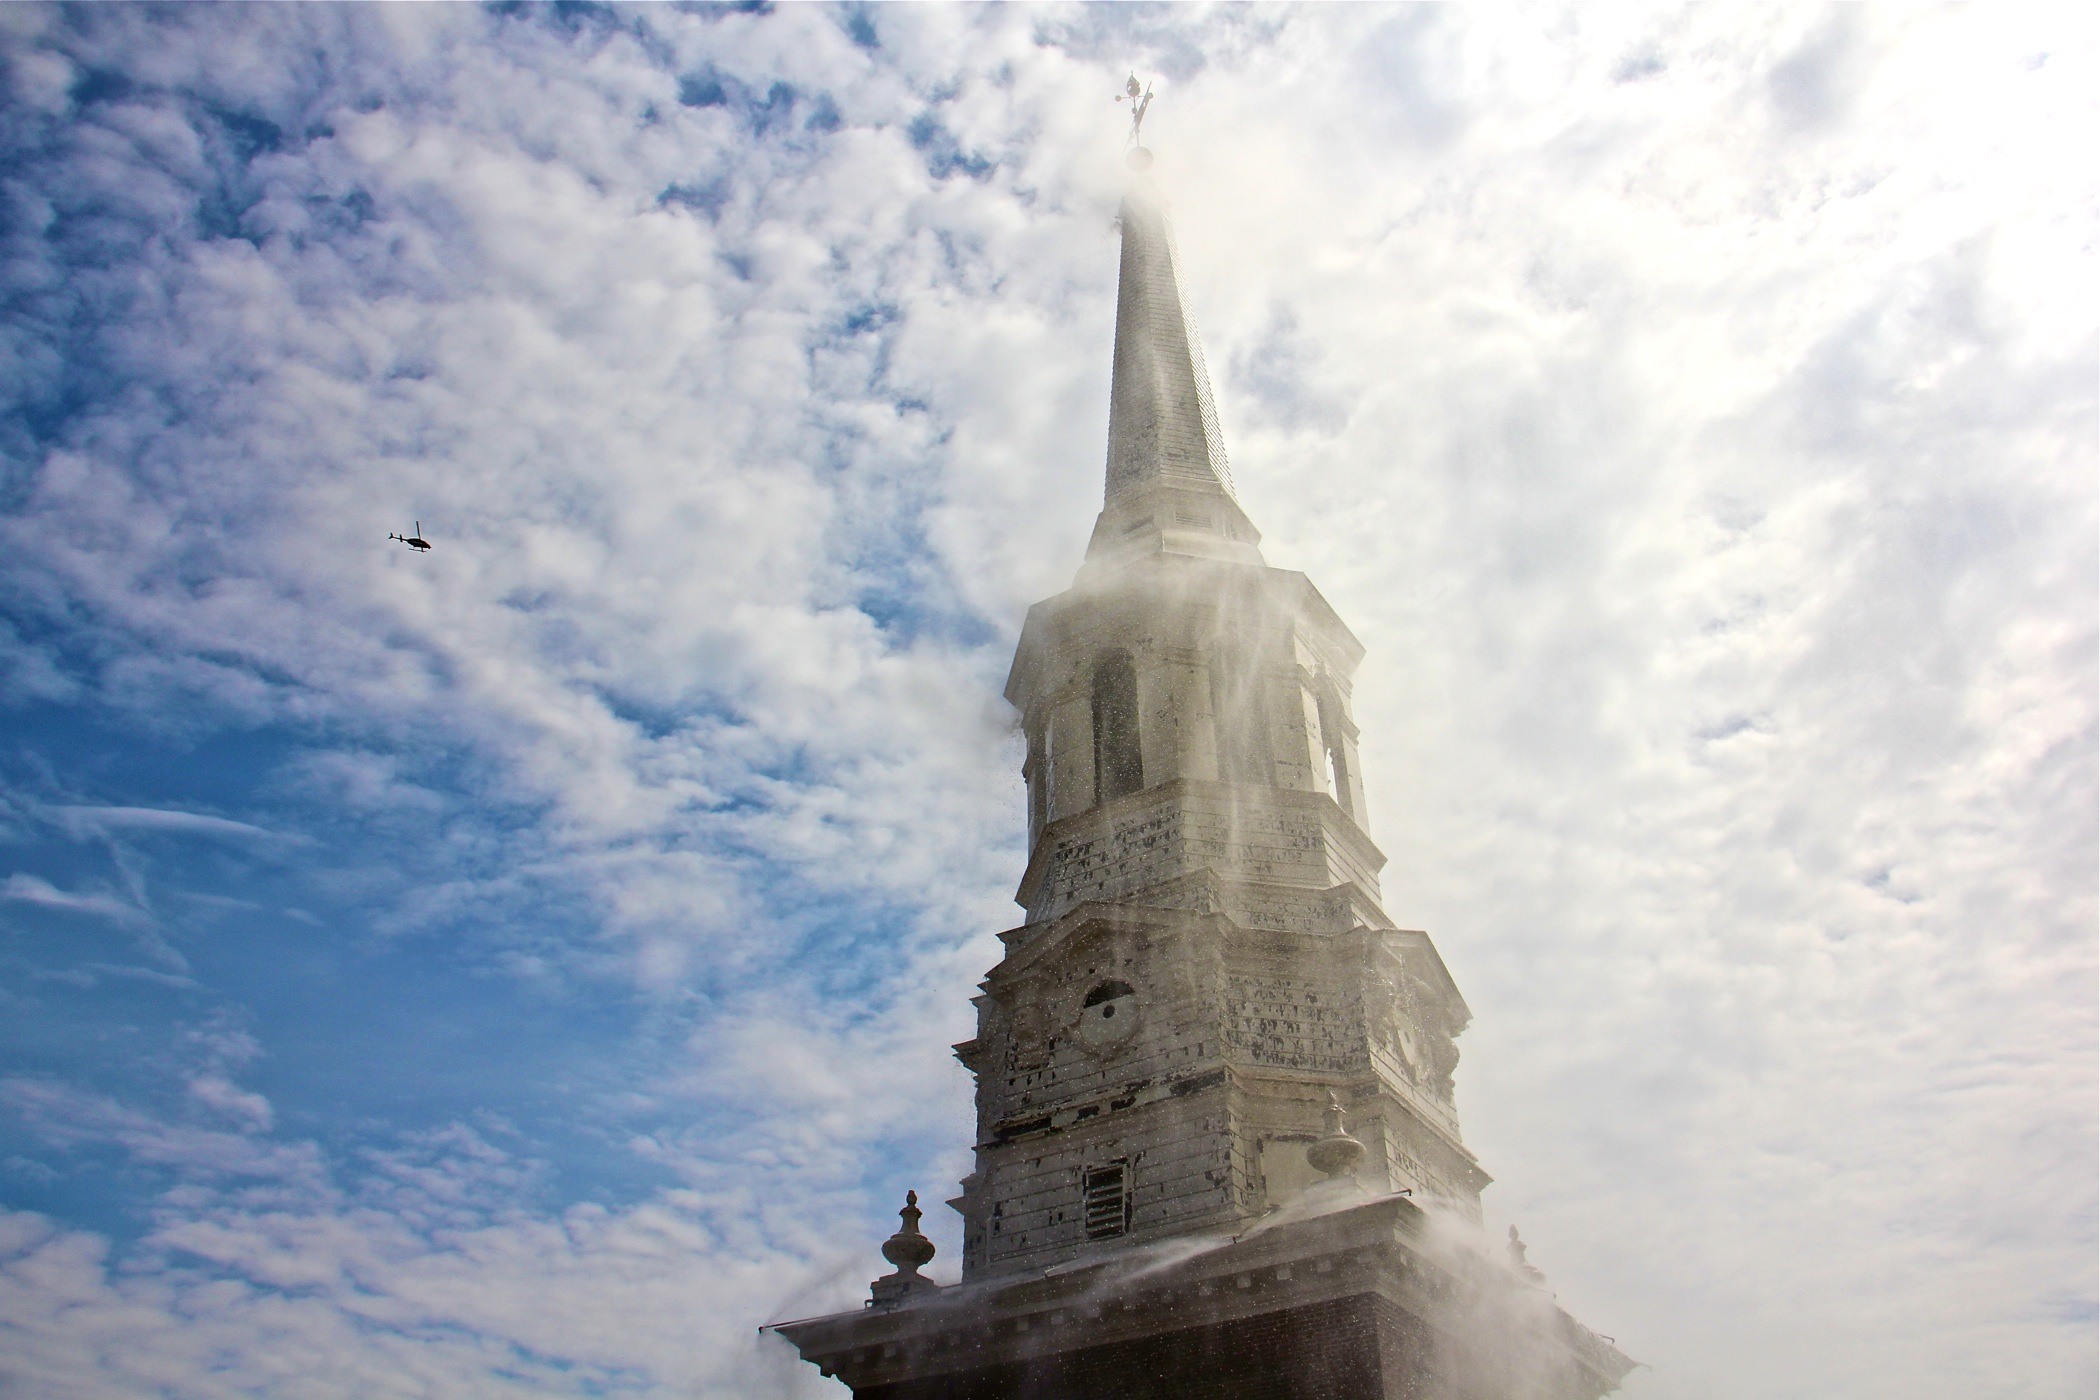 Philadelphia's historic Christ Church tests its fire sprinkler system ahead of renovations